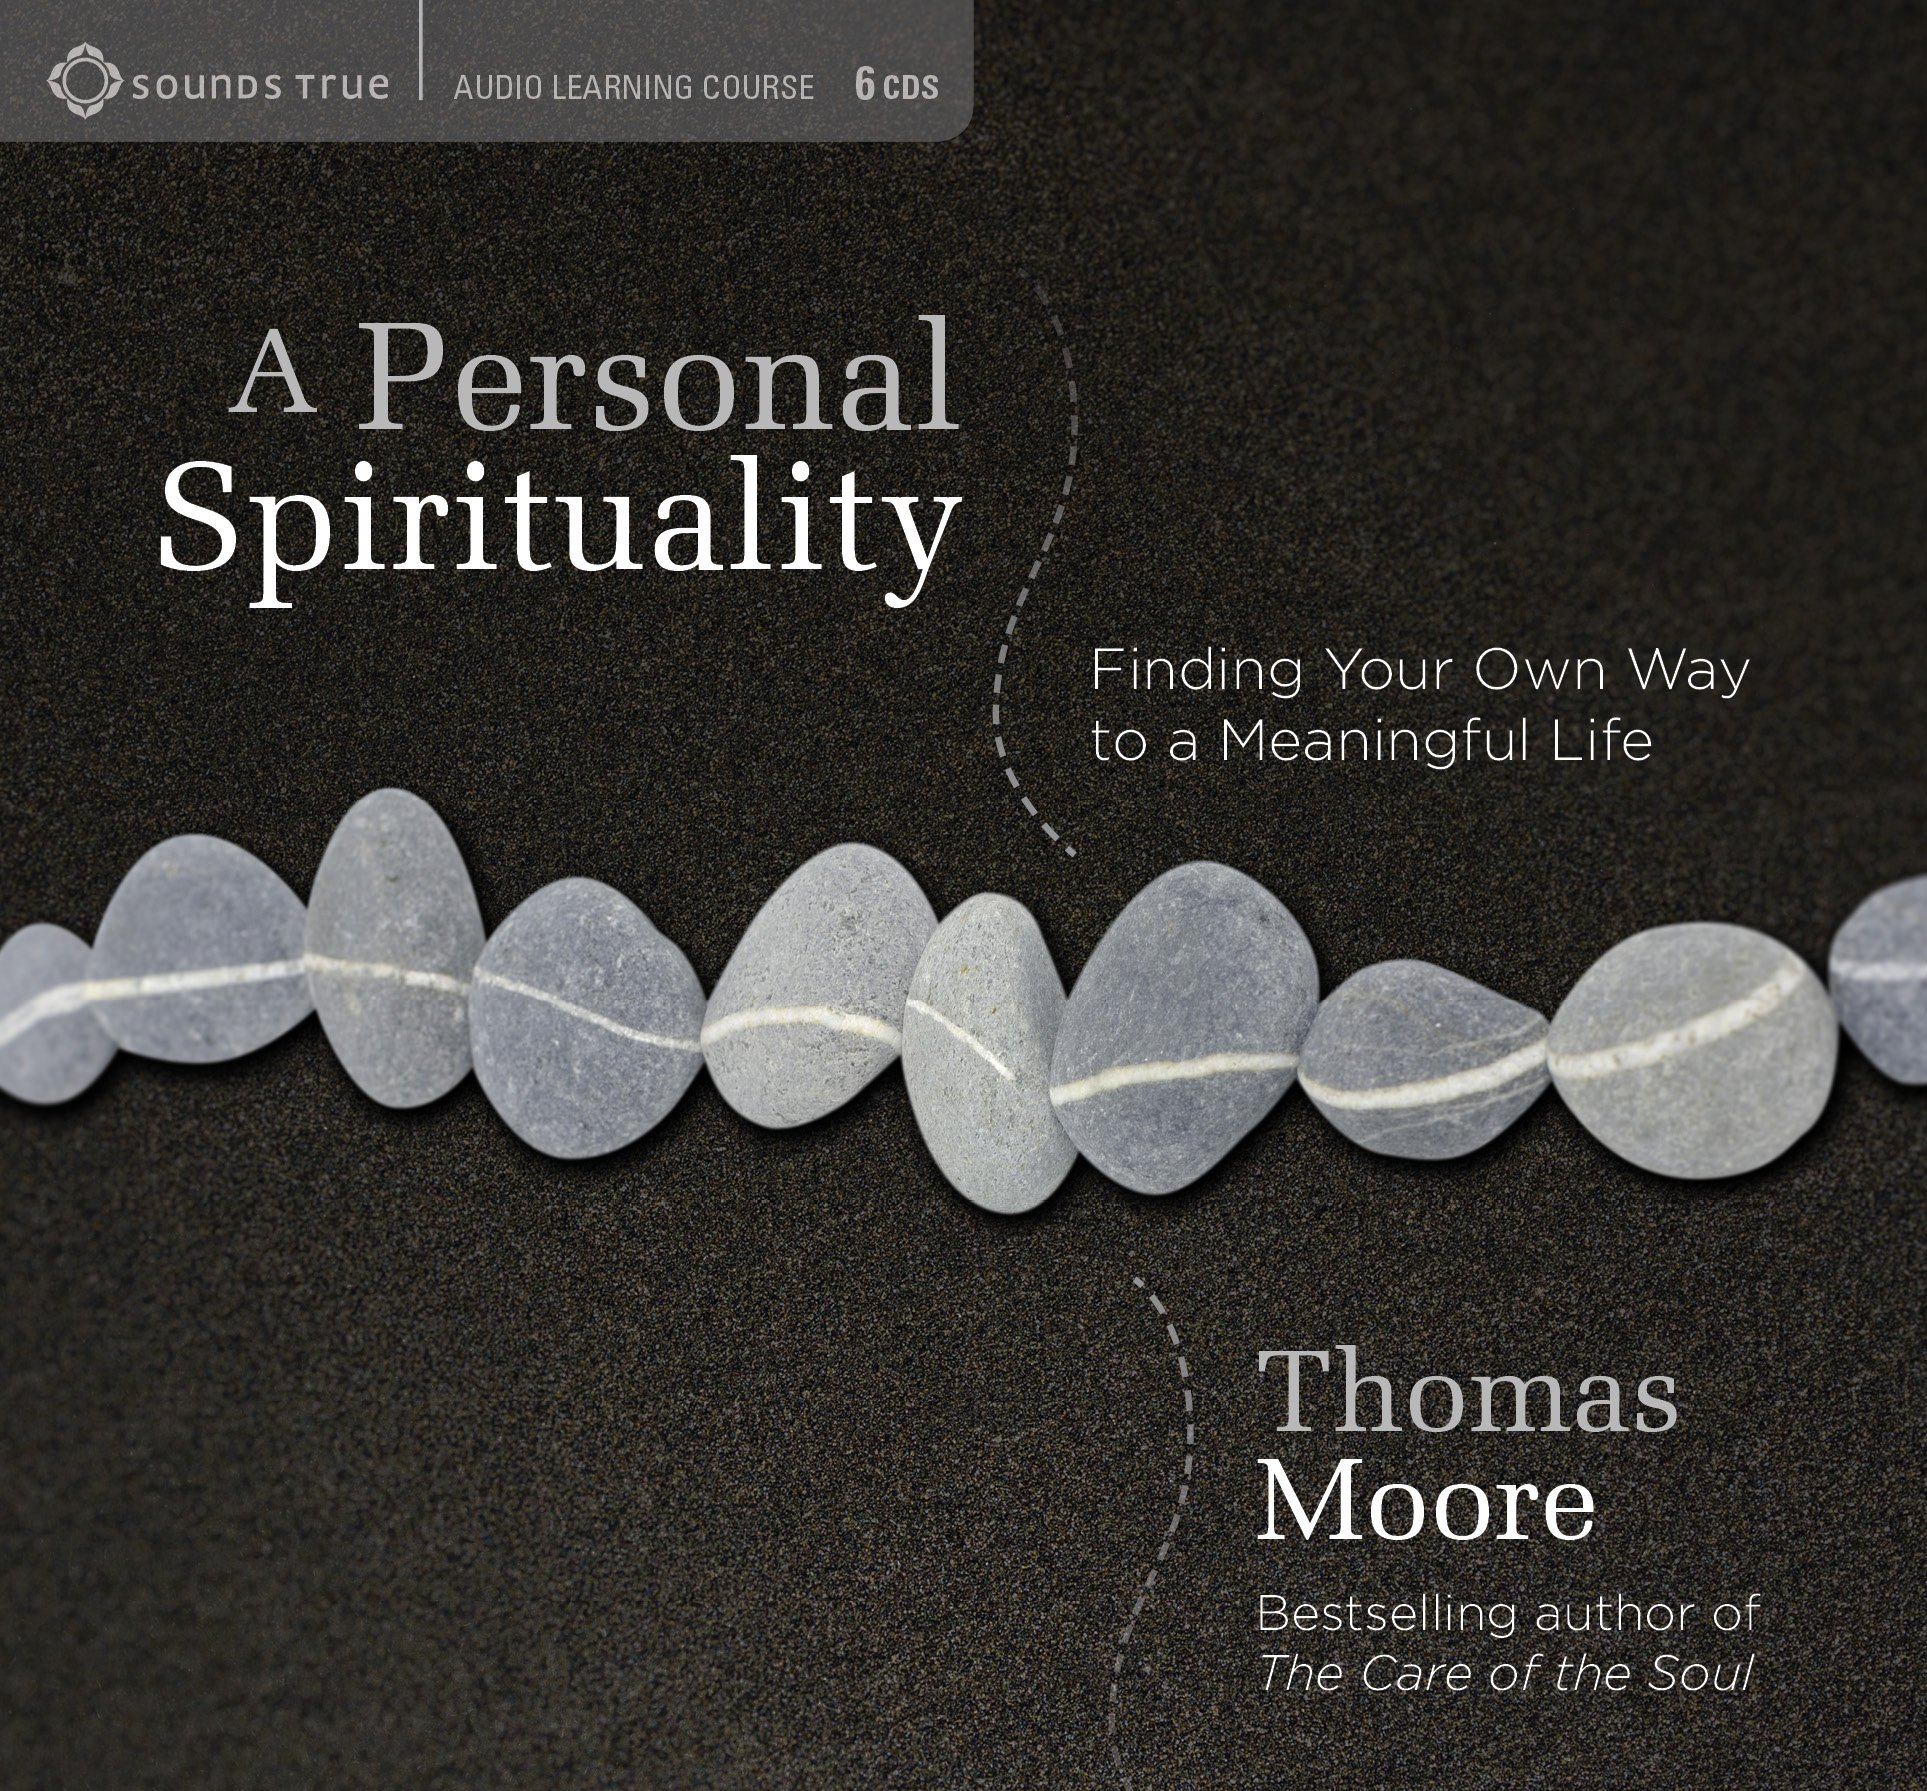 A Personal Spirituality: Finding Your Own Way to a Meaningful Life (Sounds True Audio Learning Course)